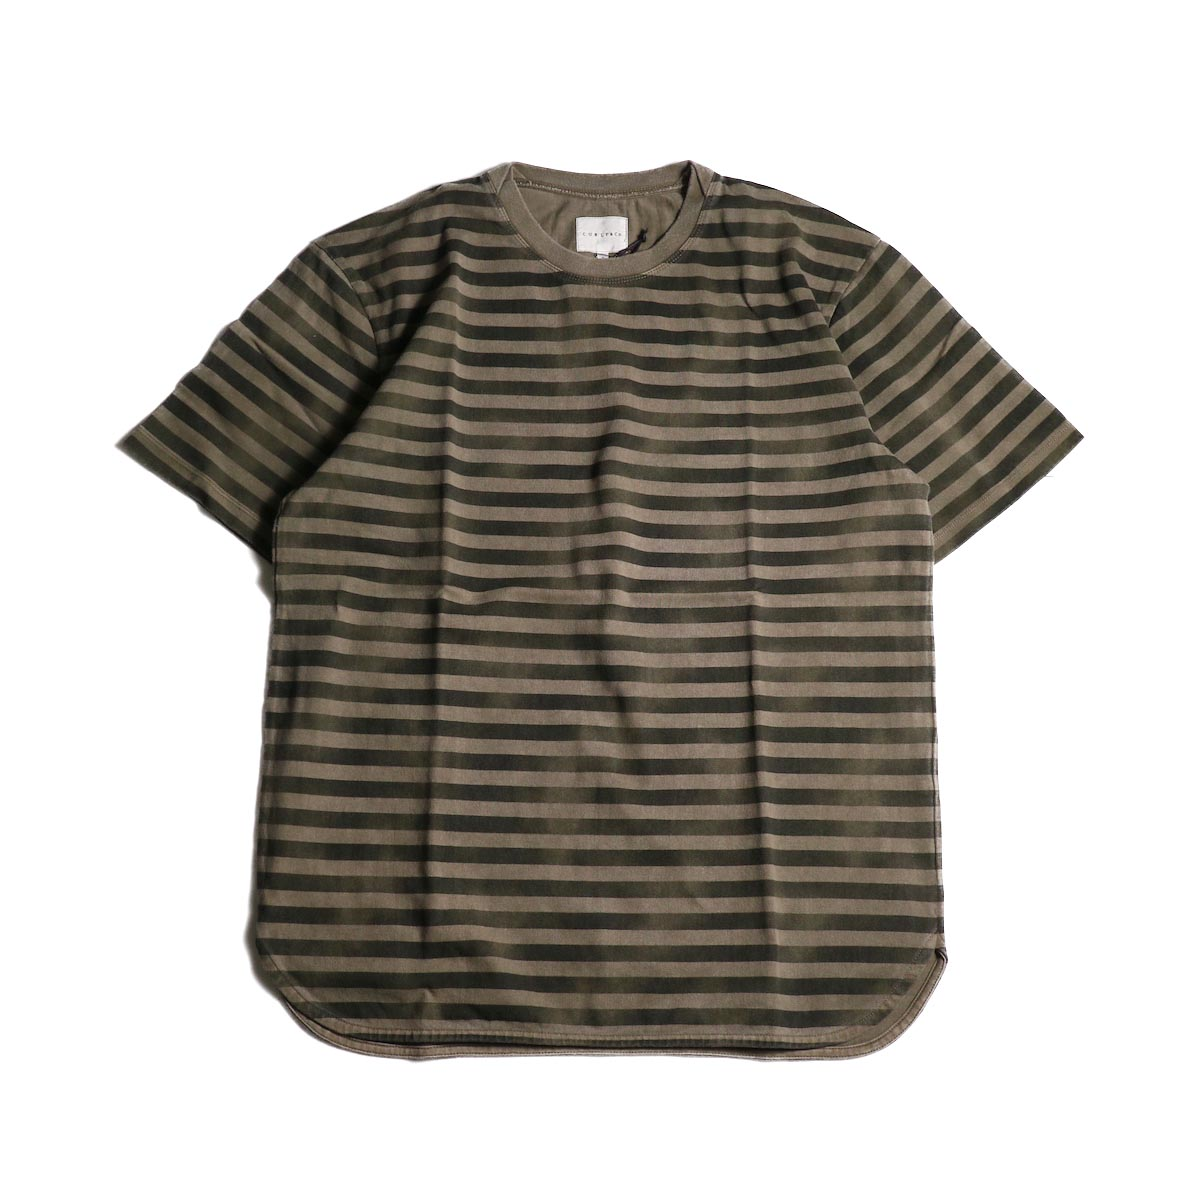 CURLY / FROSTED SS BORDER TEE (Beige/Black)